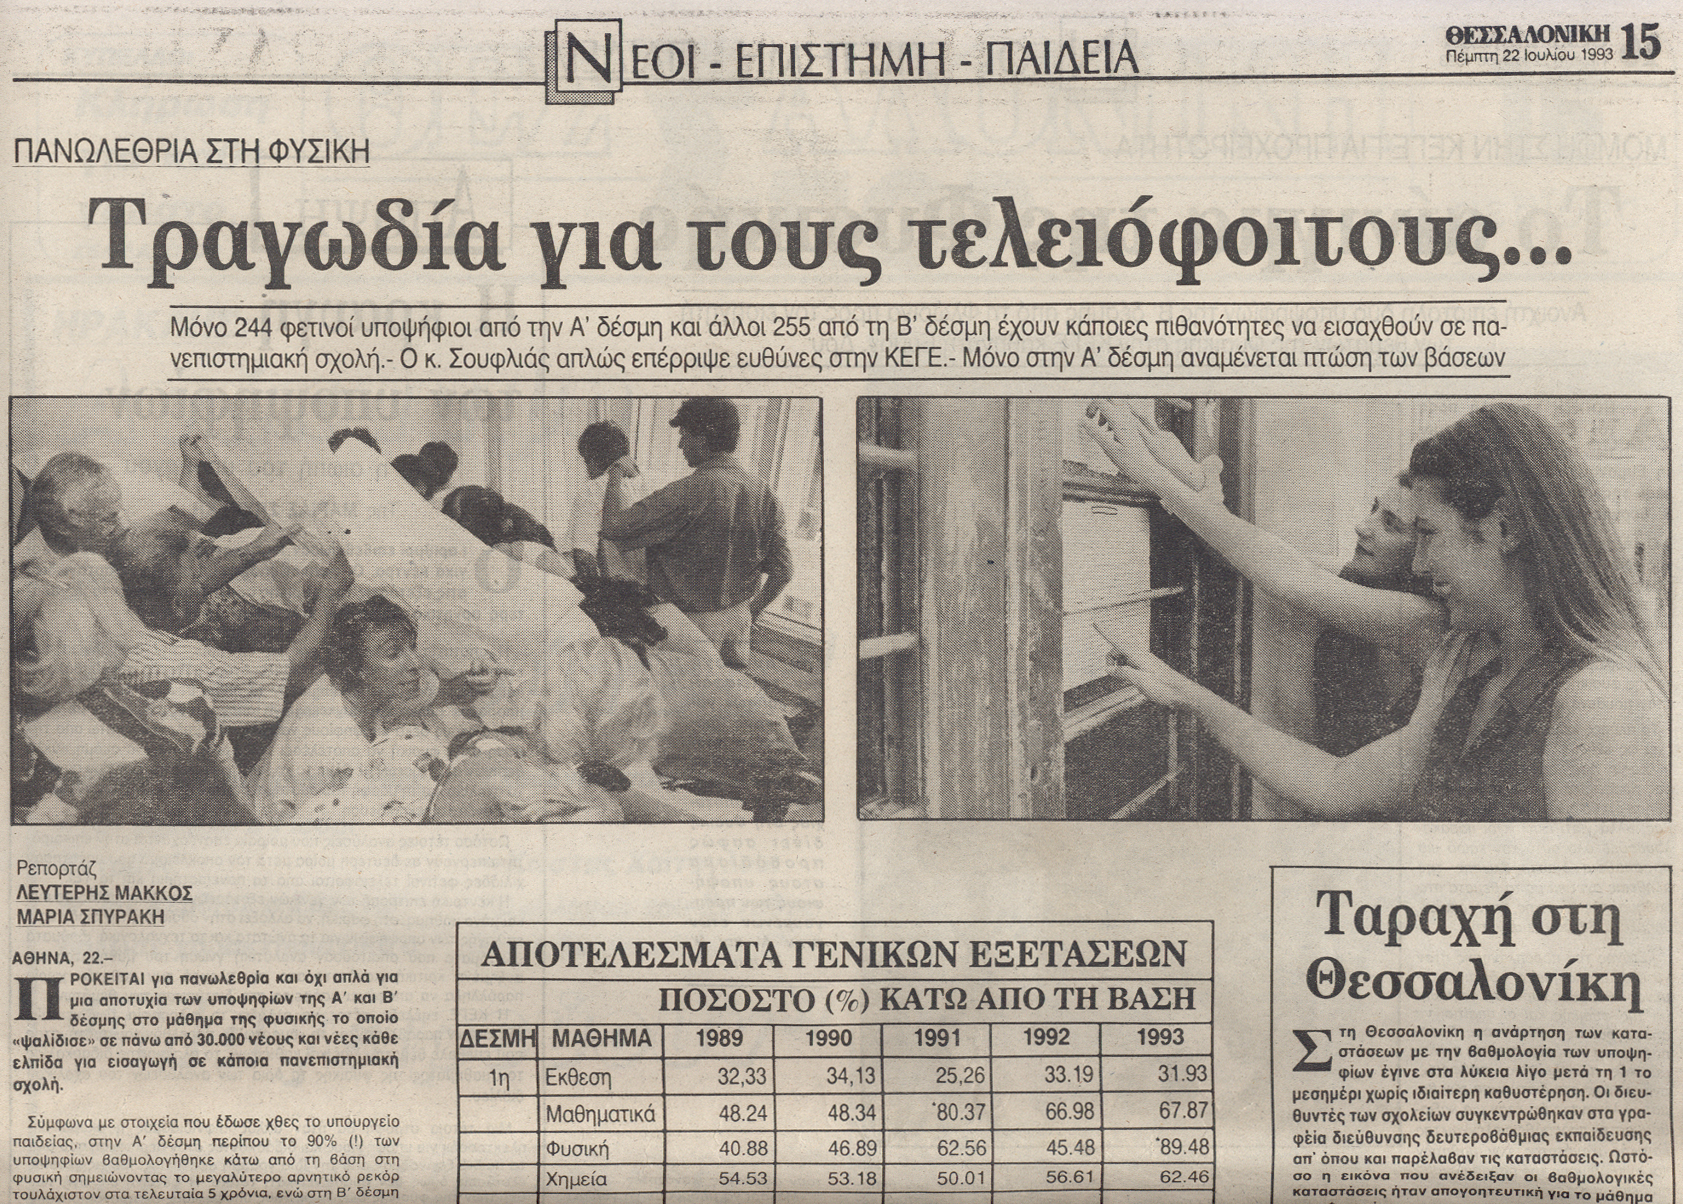 Evangelos Katsioulis on Thessaloniki, 1993